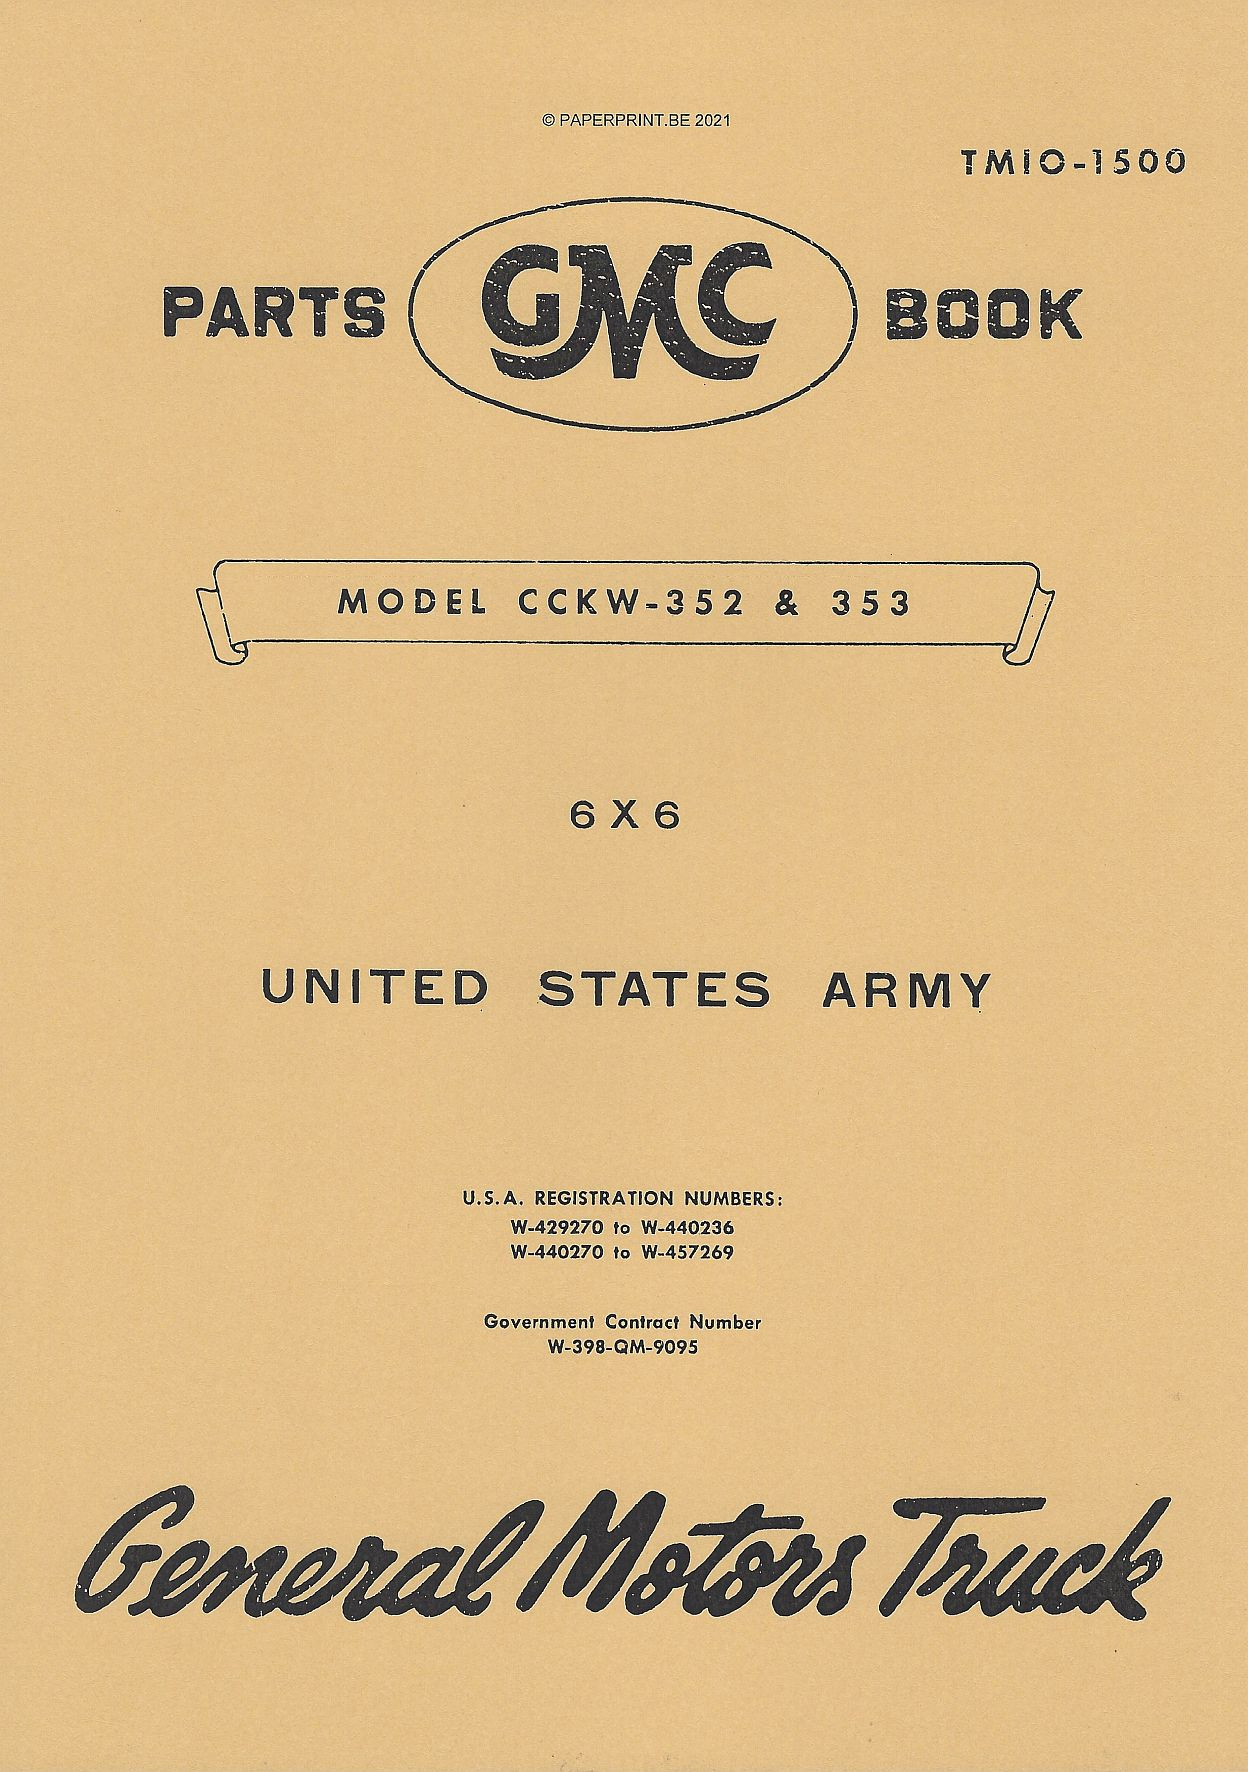 TM 10-1500 US GMC CCKW-352 & CCKW-353 PARTS BOOK